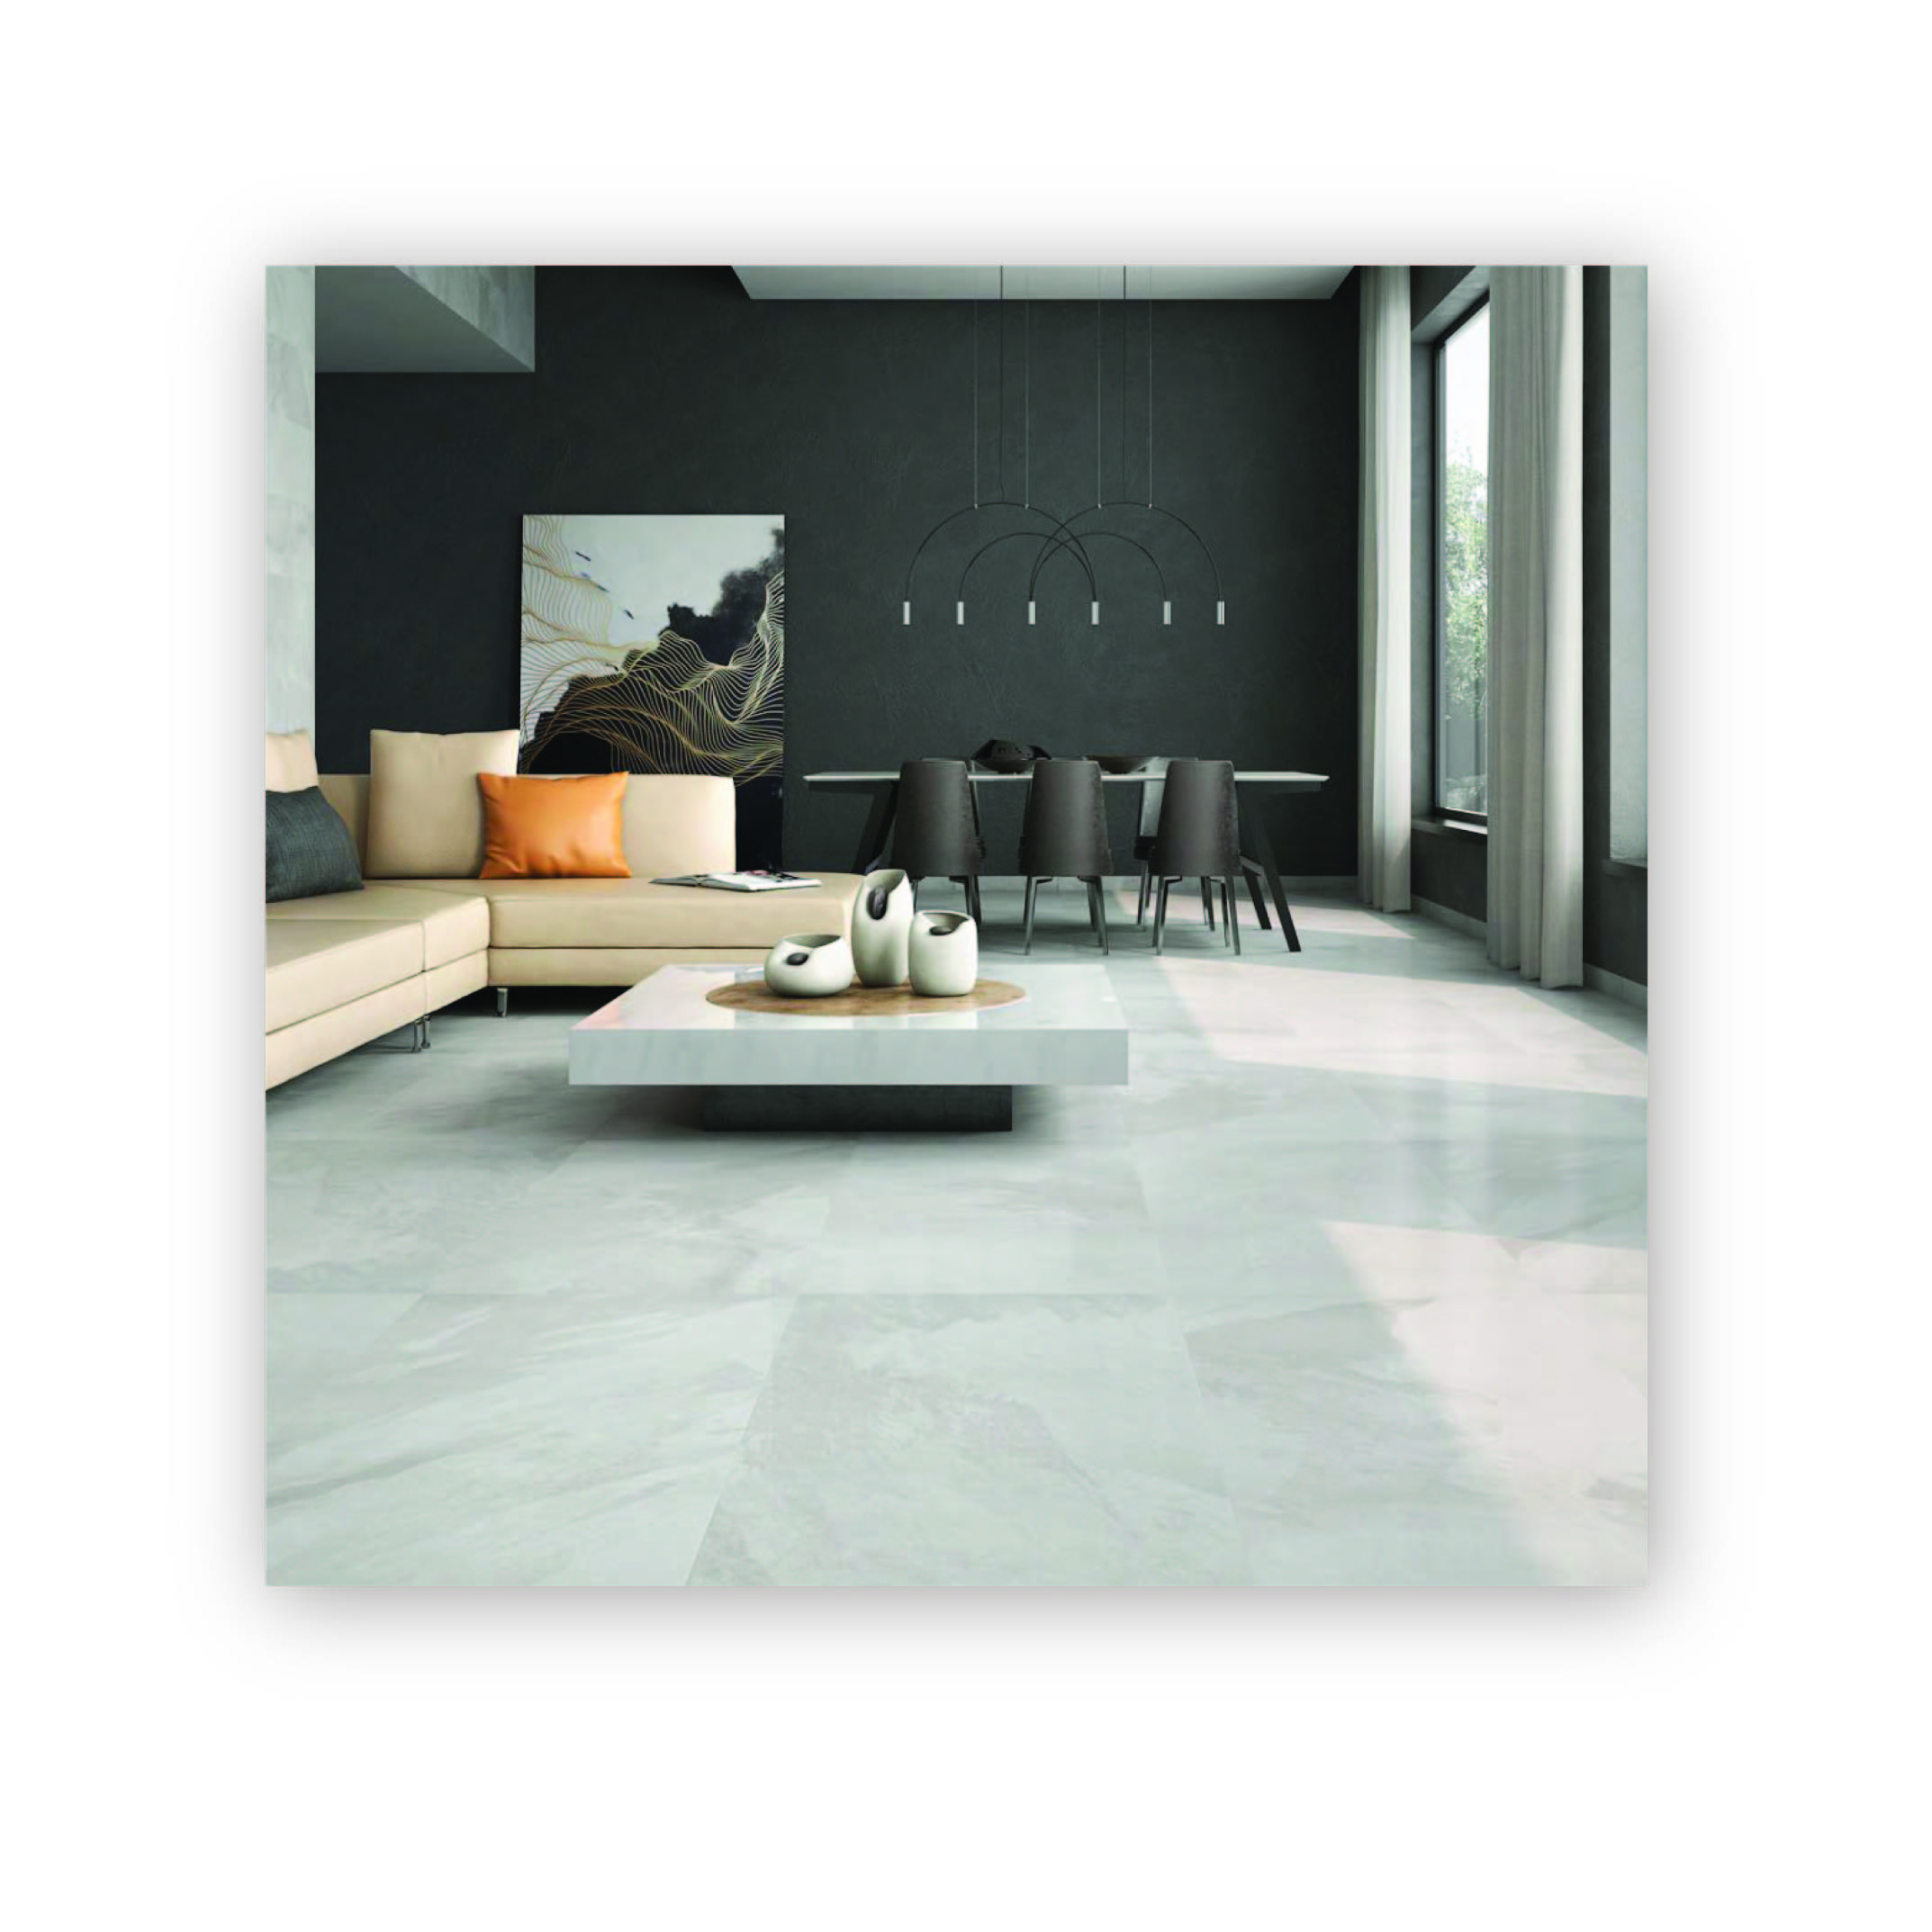 All Natural Stone Stock Material, All Natural Stone Stock Porcelain, k-slate